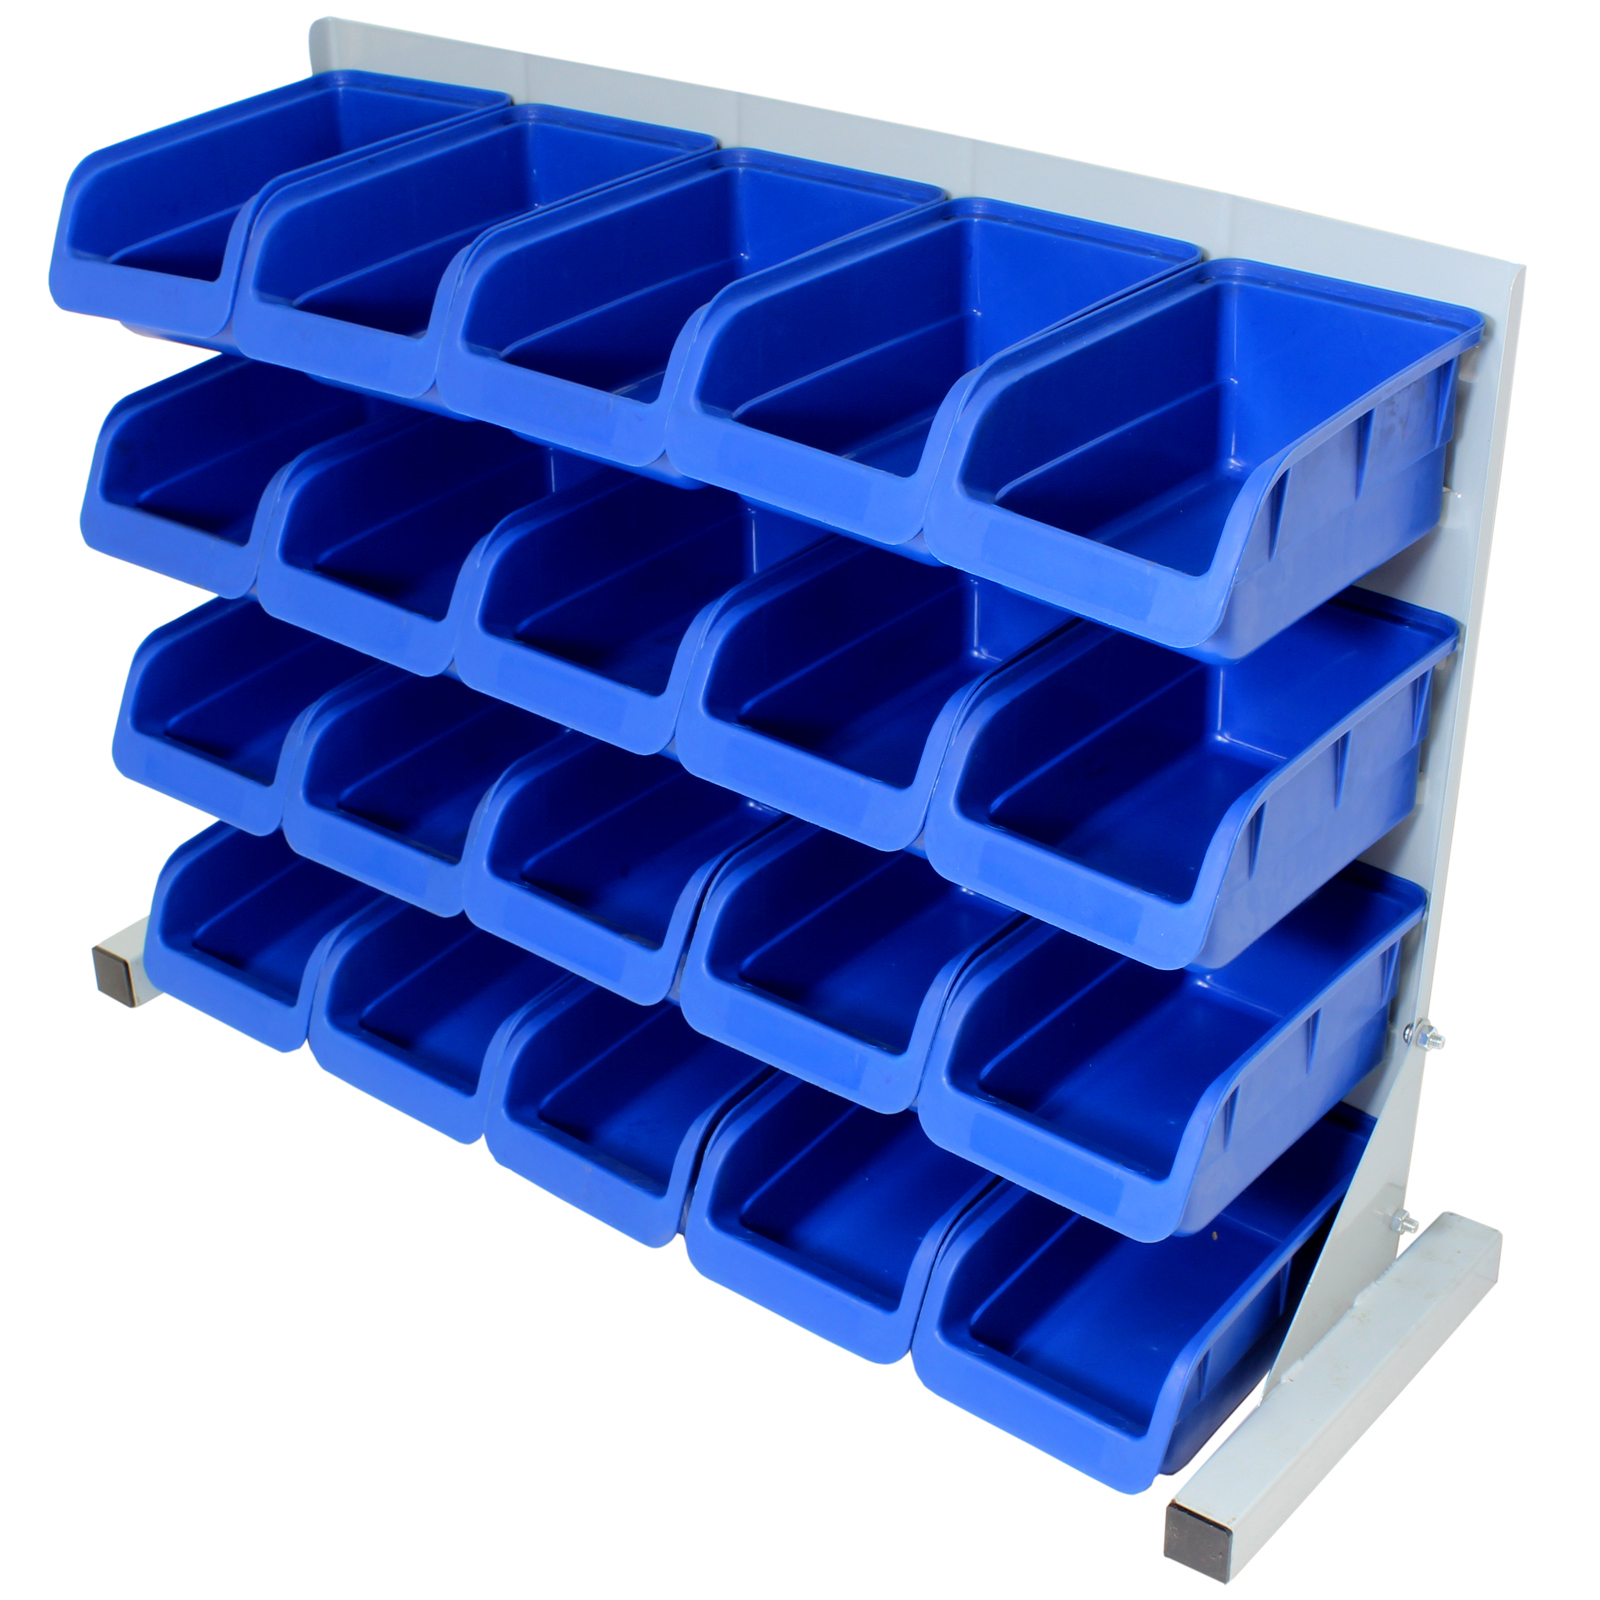 Attrayant Sentinel 20PCE FREE STANDING BLUE PLASTIC STORAGE BIN KIT  GARAGE/WORKSHOP/WORKBENCH BINS